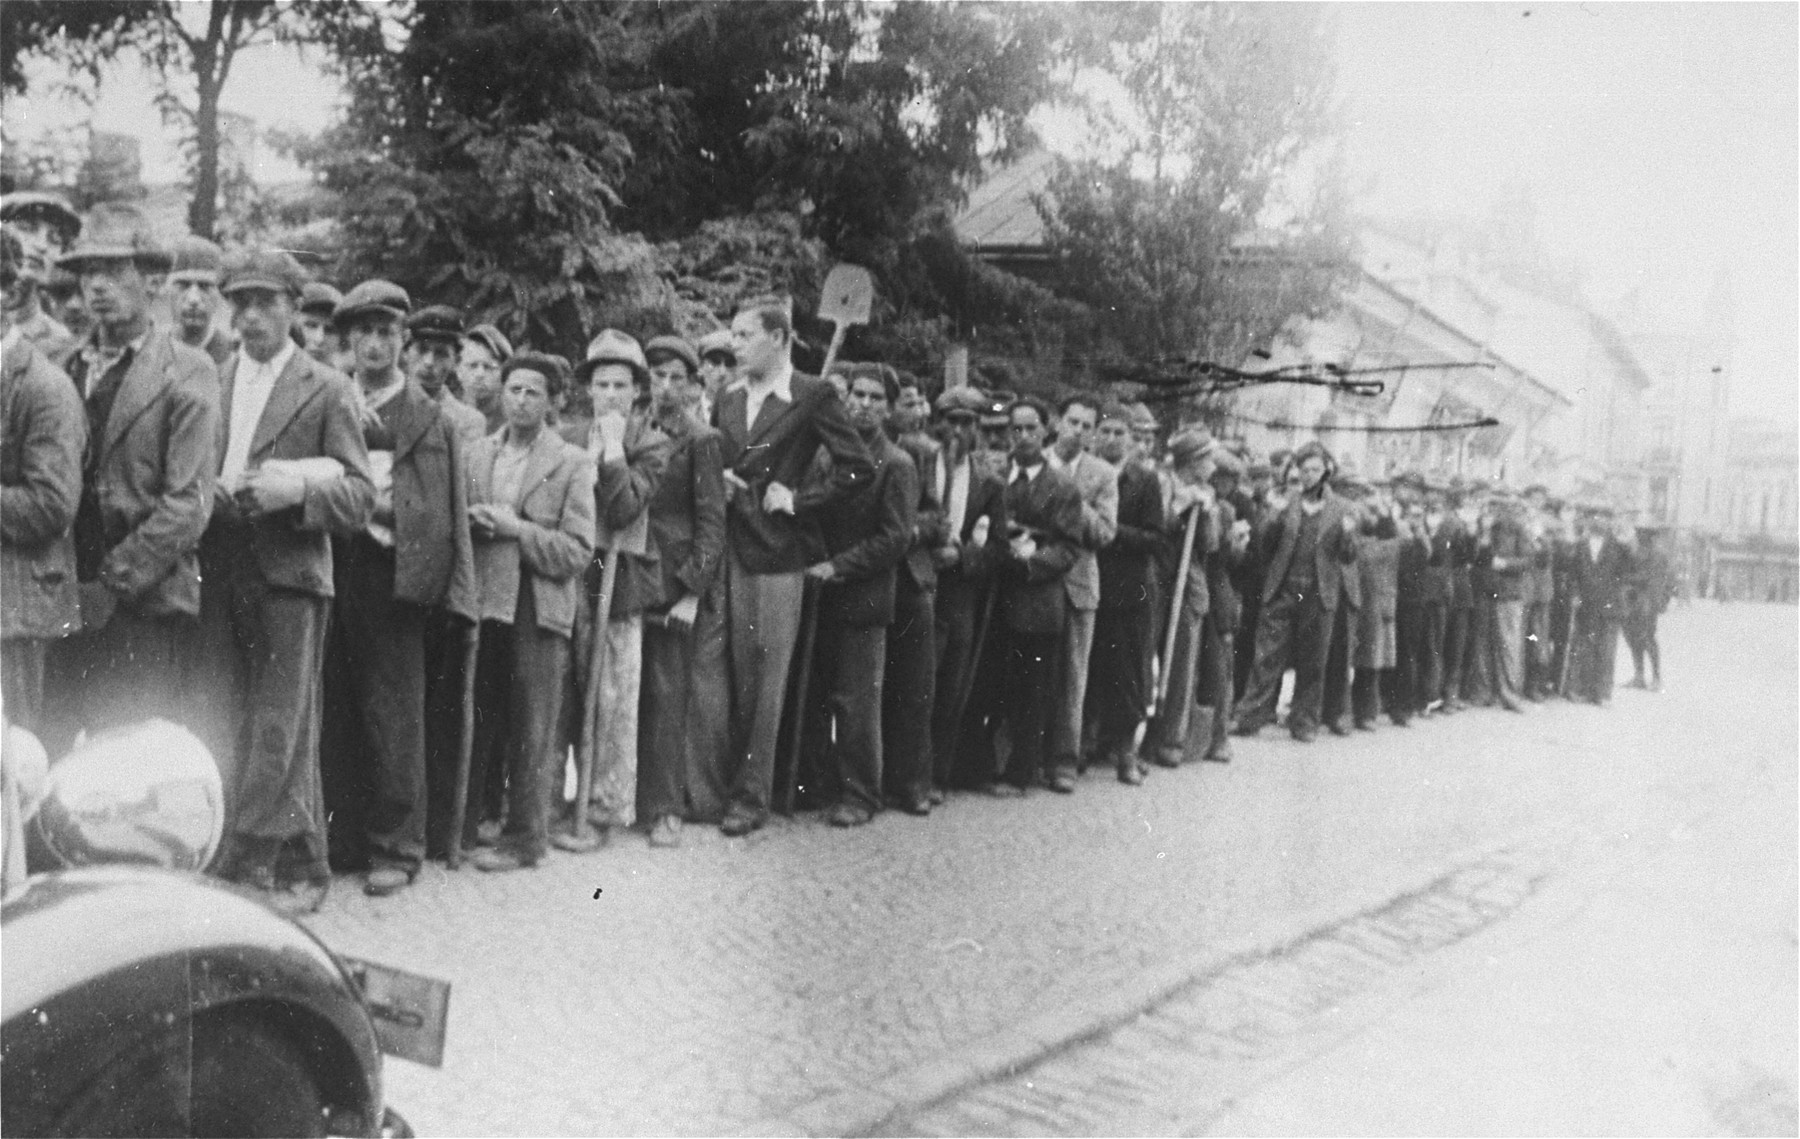 A column of young Jewish men, who had been conscripted by the Romanian authorities for forced labor (digging shelters or mass graves in the Jewish cemetery), are brought to police headquarters during the Iasi pogrom.  The common pits dug at this time became the graves of many Jews murdered during the Iasi pogrom.